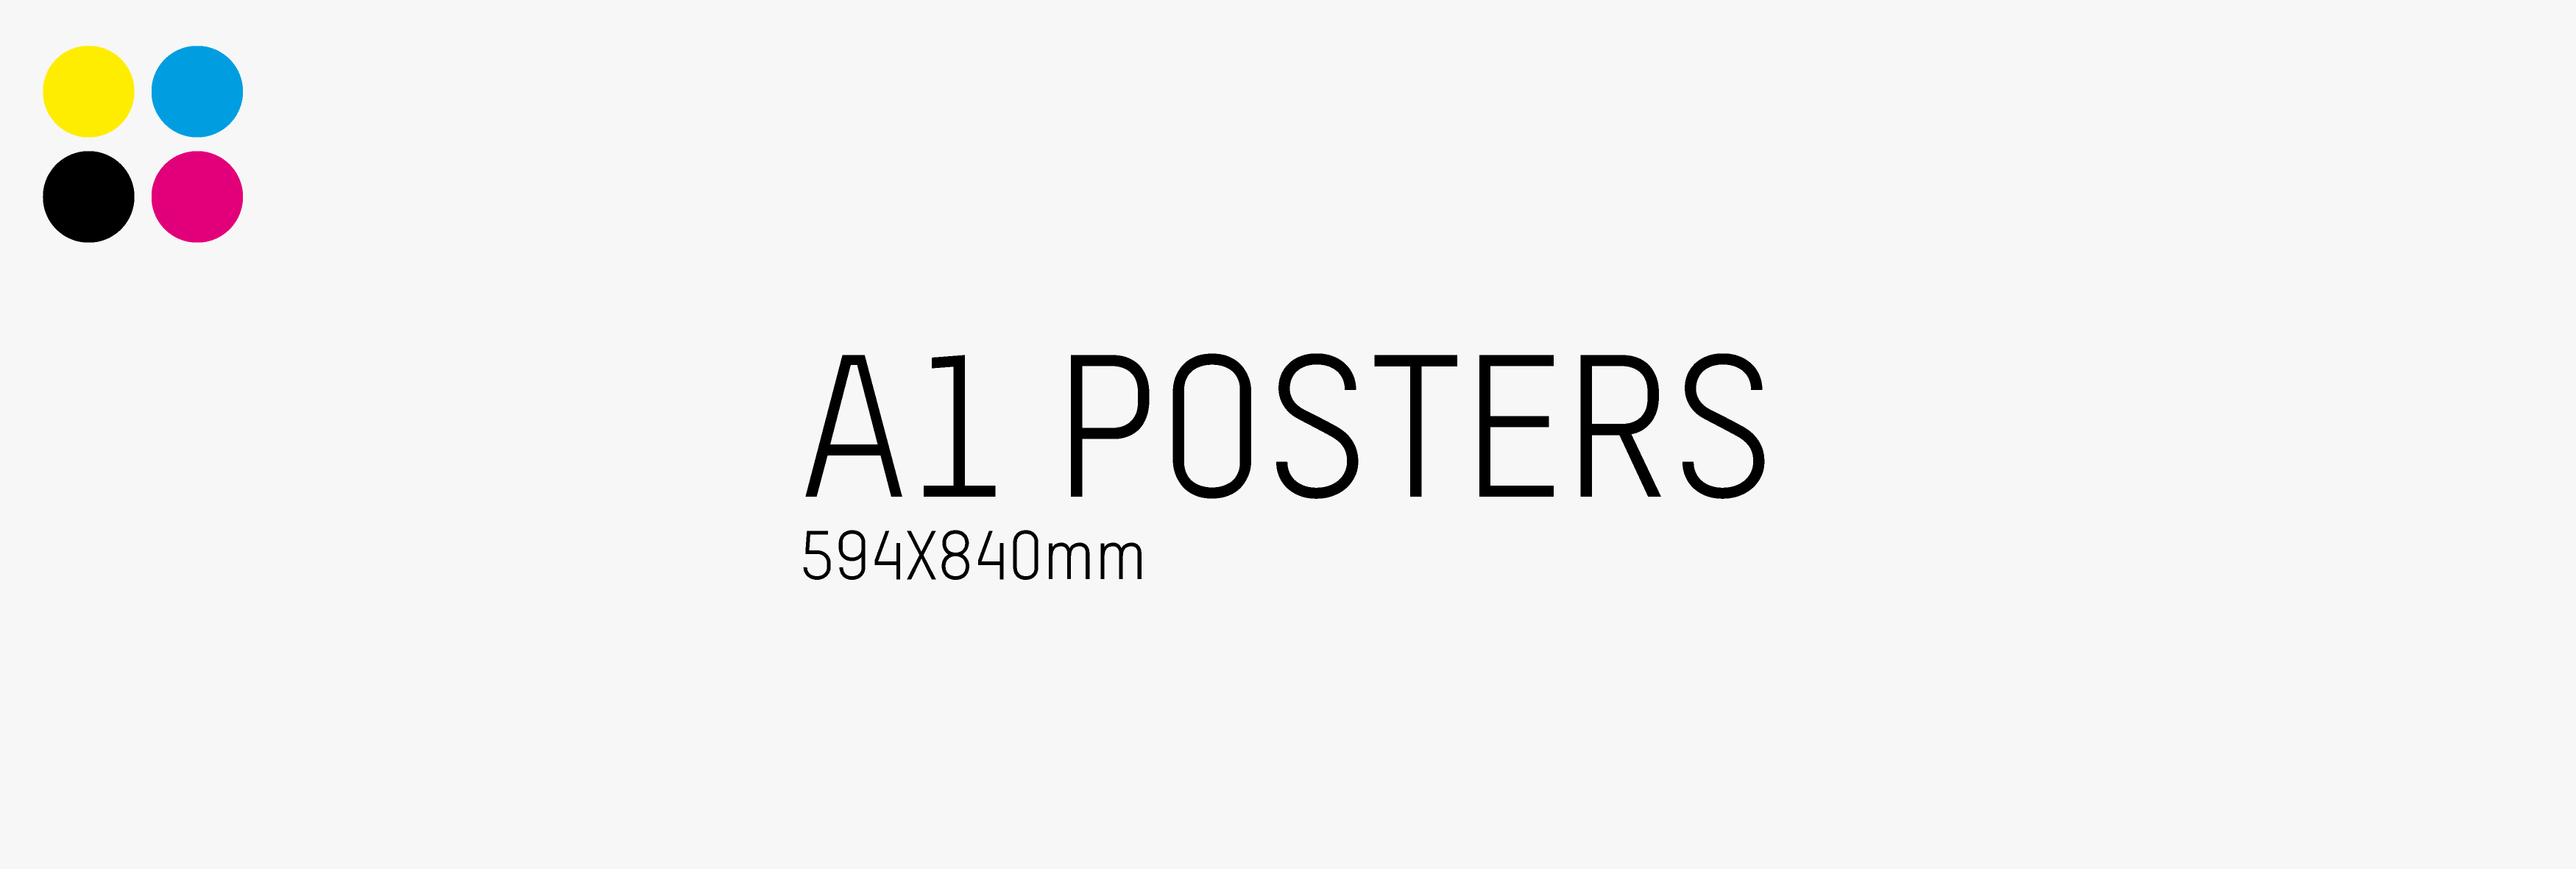 A1-posters